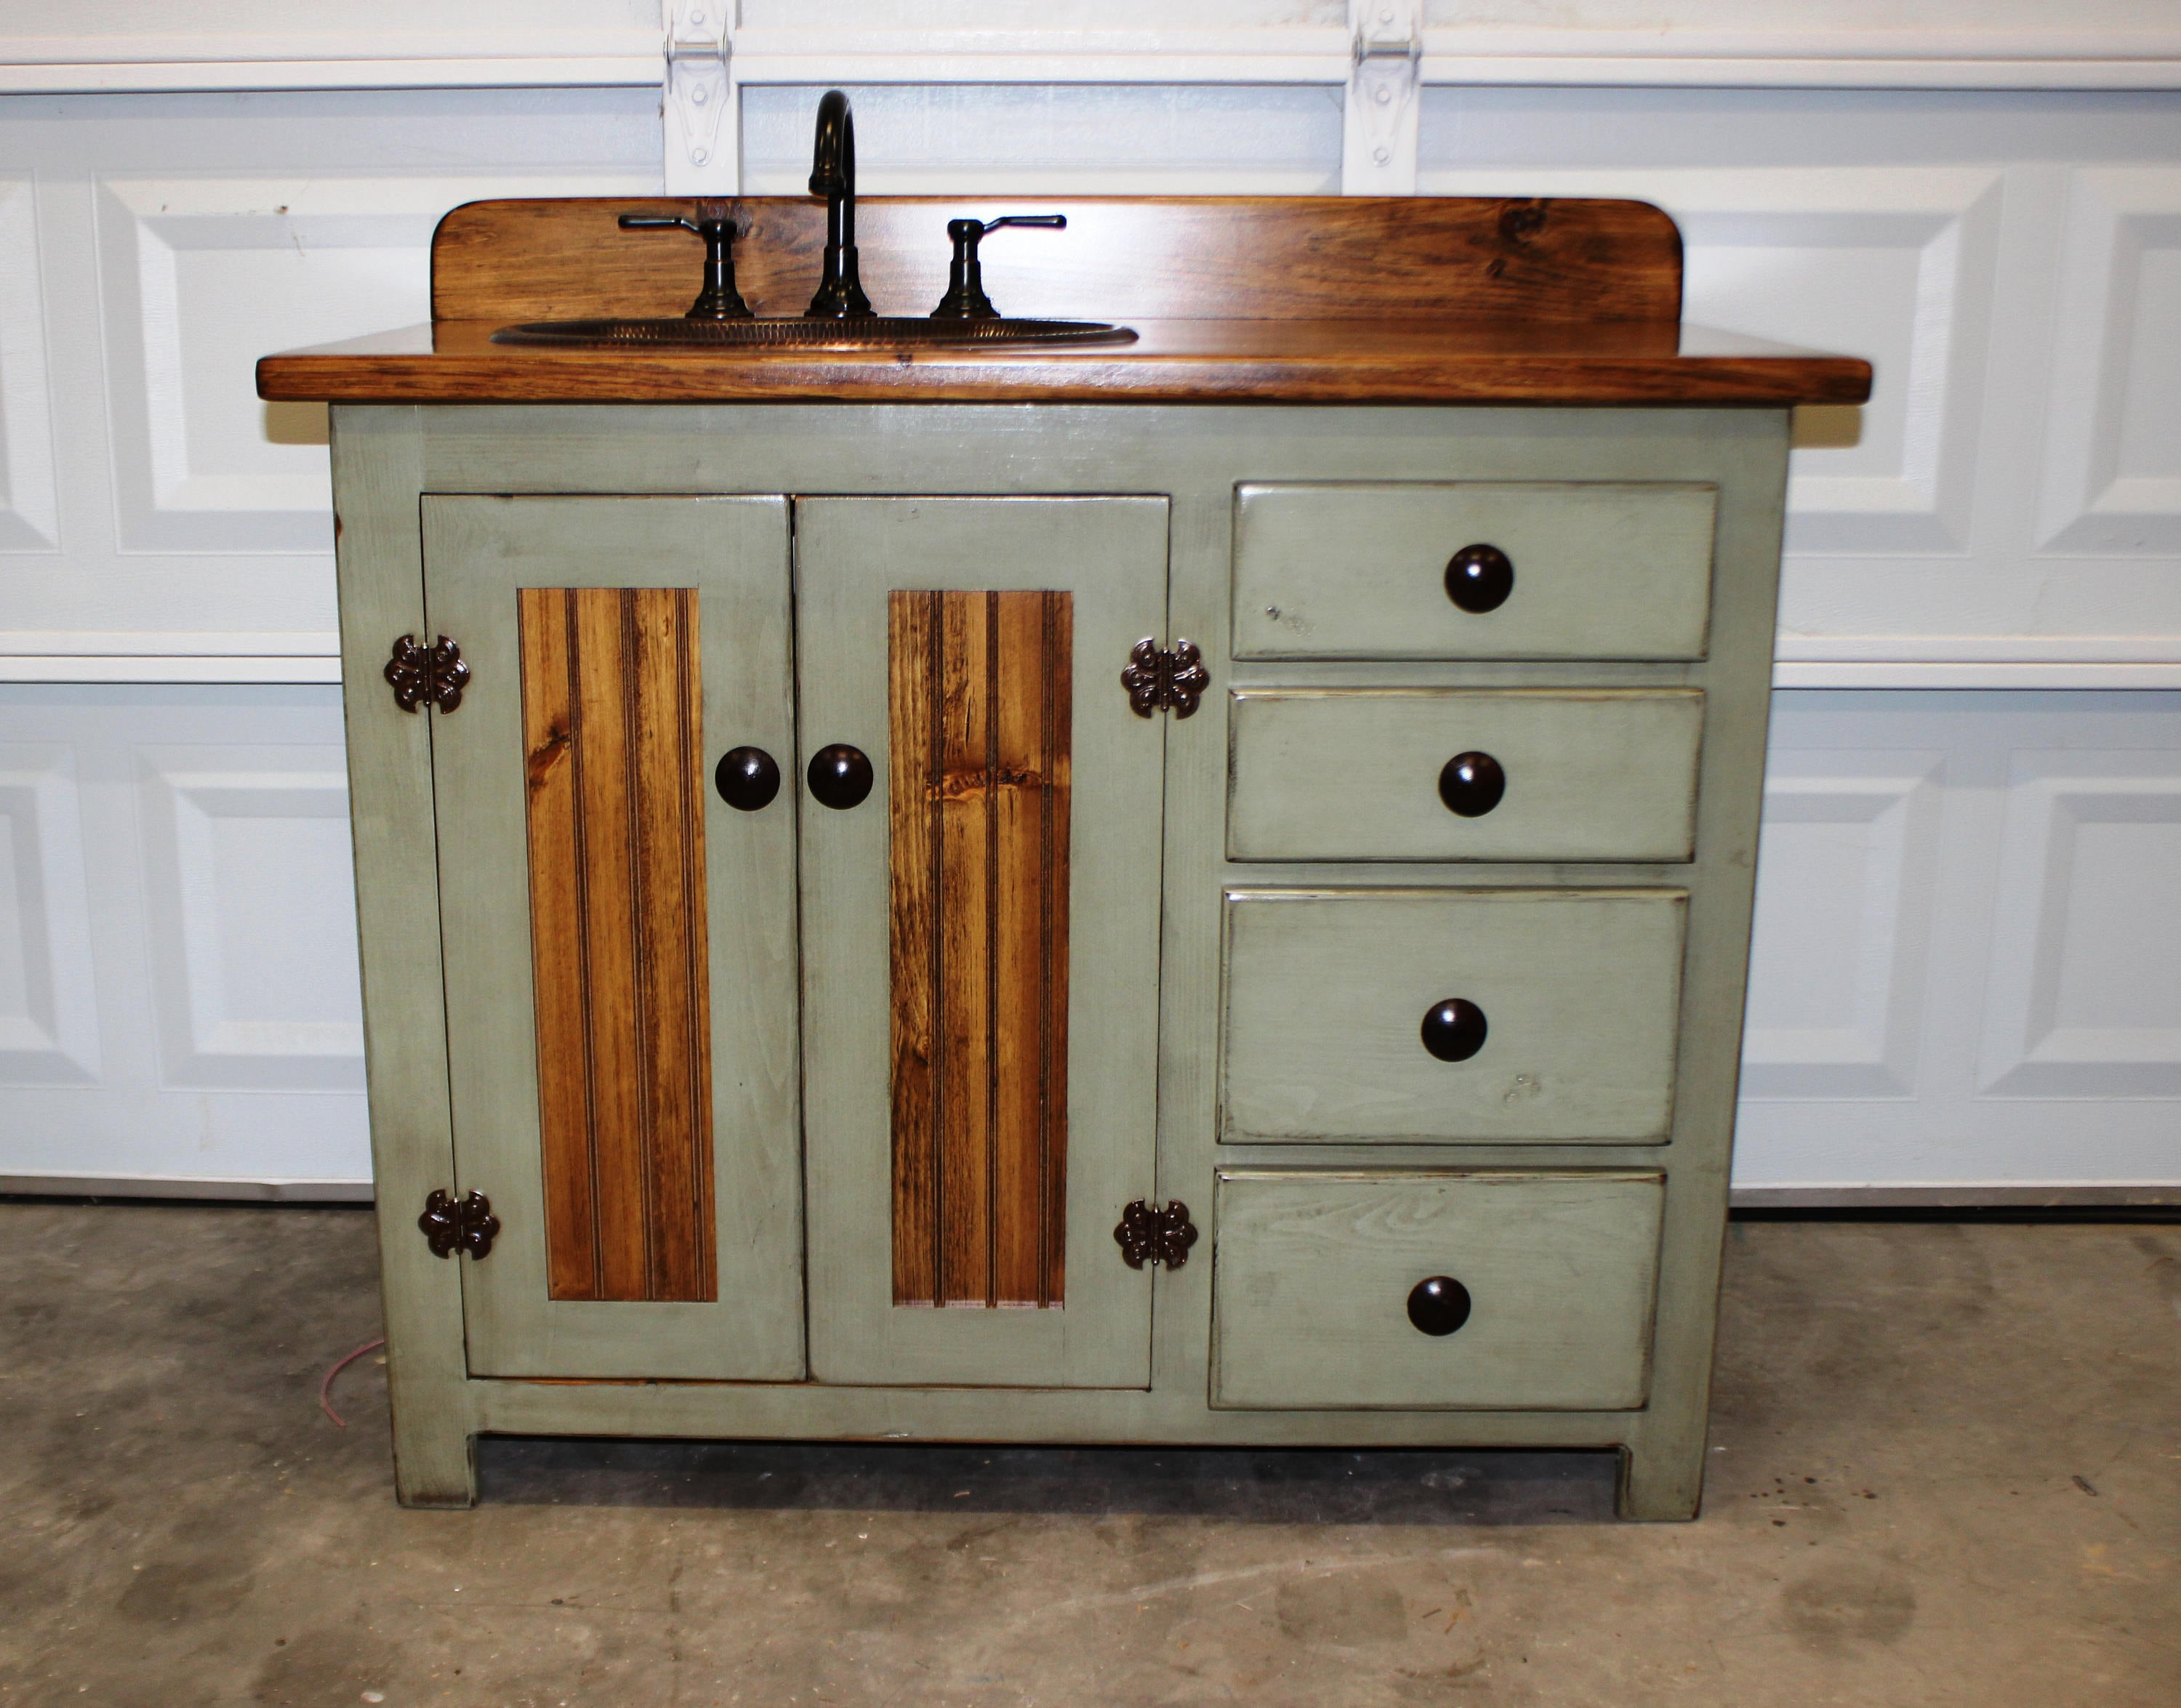 Rustic Farmhouse Vanity Copper Sink 42 Sage Green Bathroom Vanity Bathroom Vanity With Sink Rustic Vanity Farmhouse Vanity